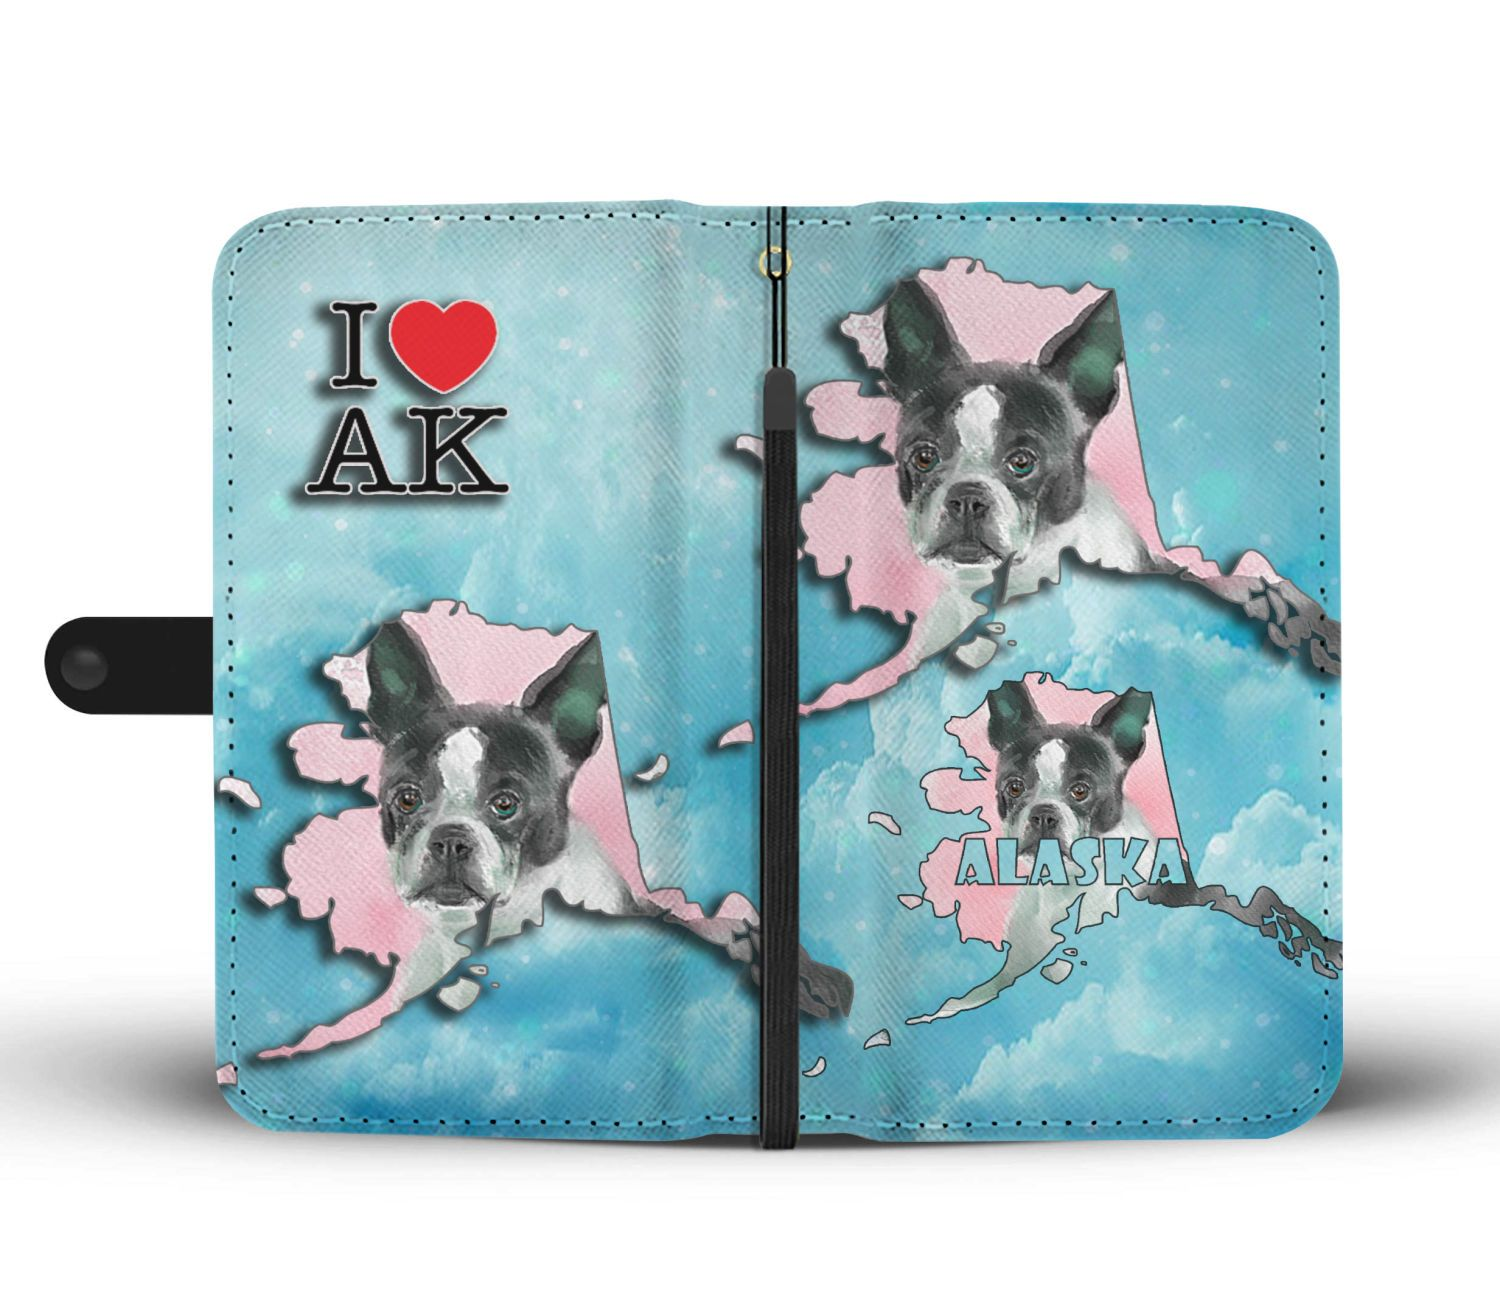 Boston Terrier Dog Art Print Wallet Case-Free Shipping-AK State - The Horse Barn